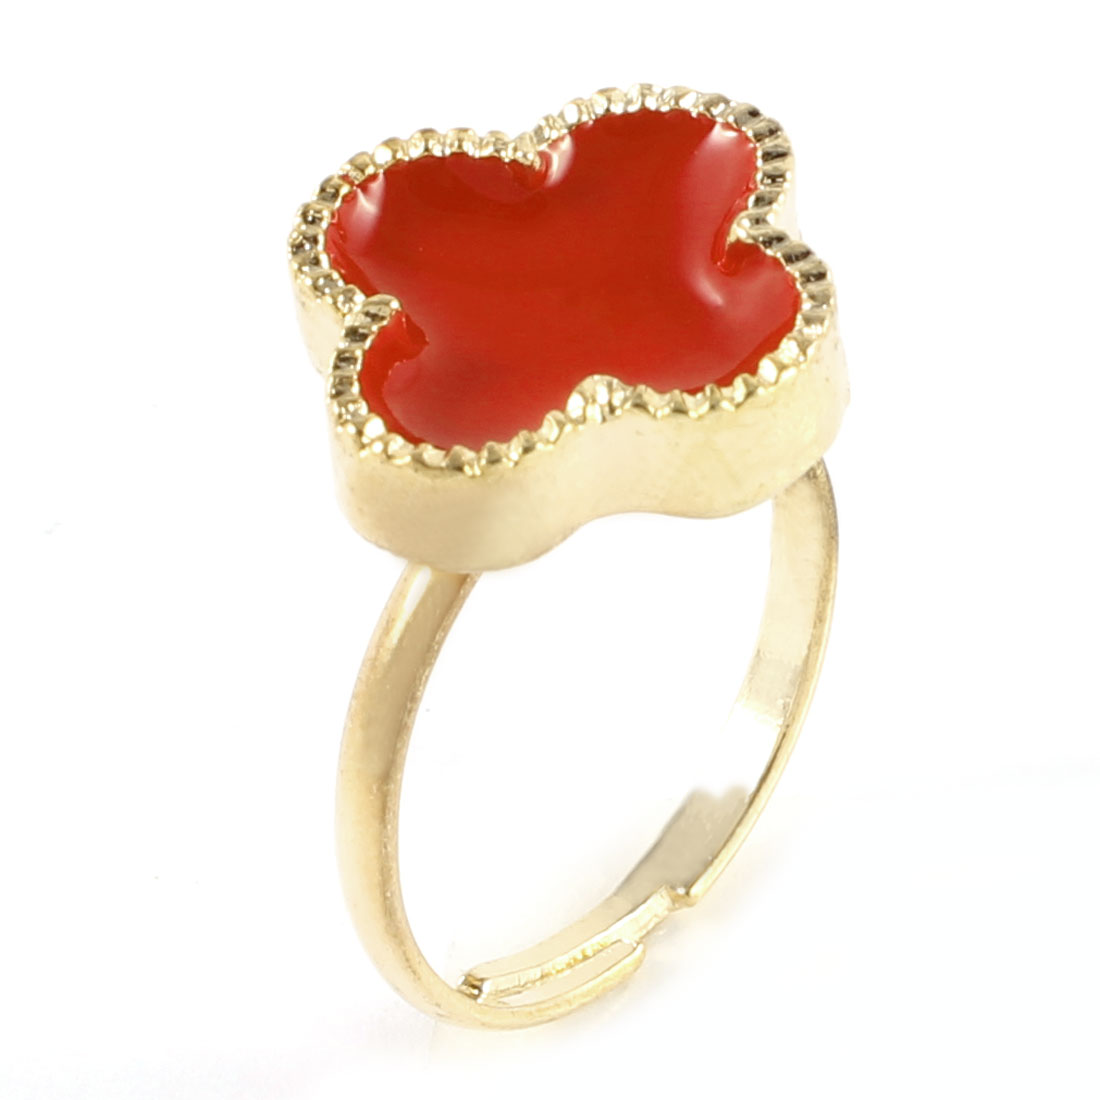 Ladies Red Four Petal Flower Decor Gold Tone Metal Adjustable Finger Ring